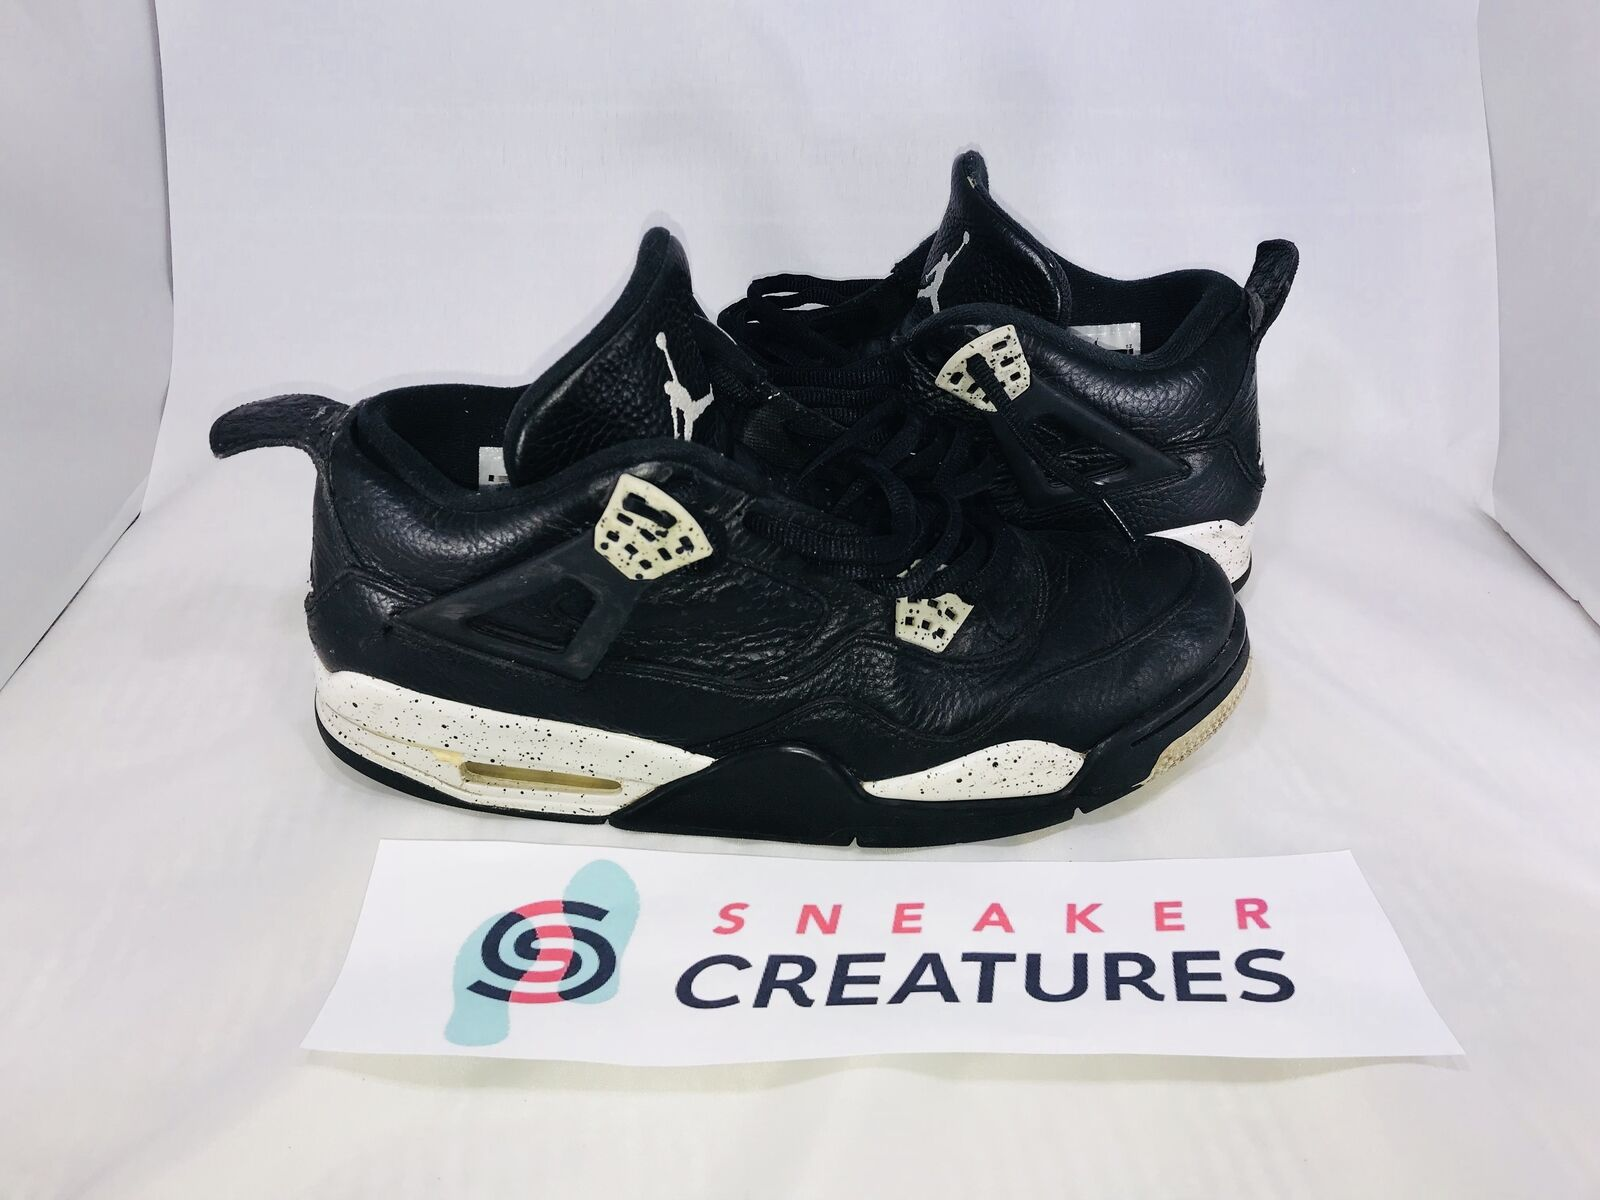 Jordan 4 Oreo 314254 003 Comfortable The latest discount shoes for men and women